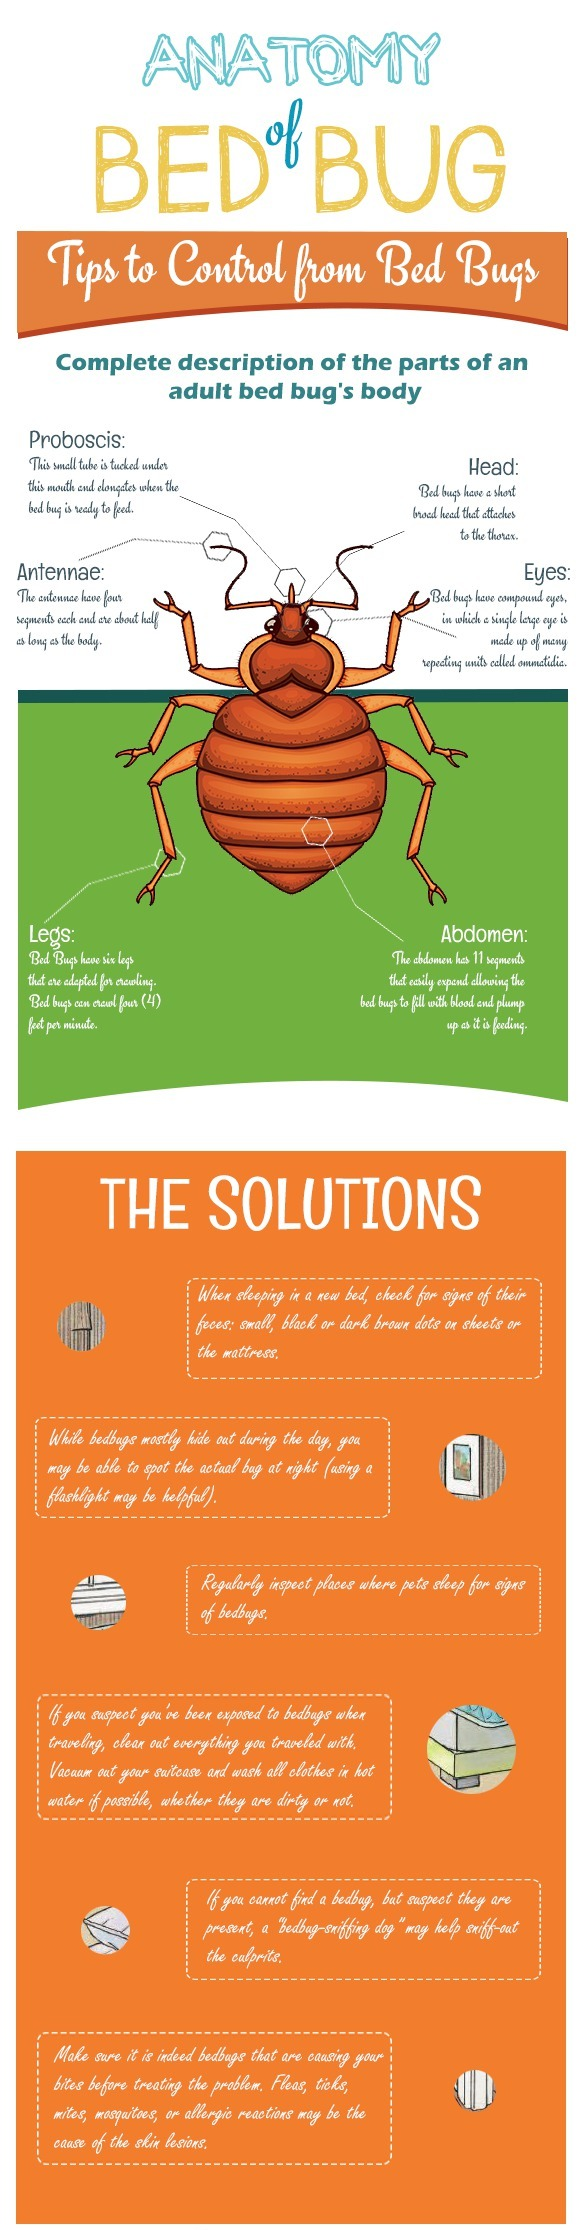 Anatomy of a Bed Bug